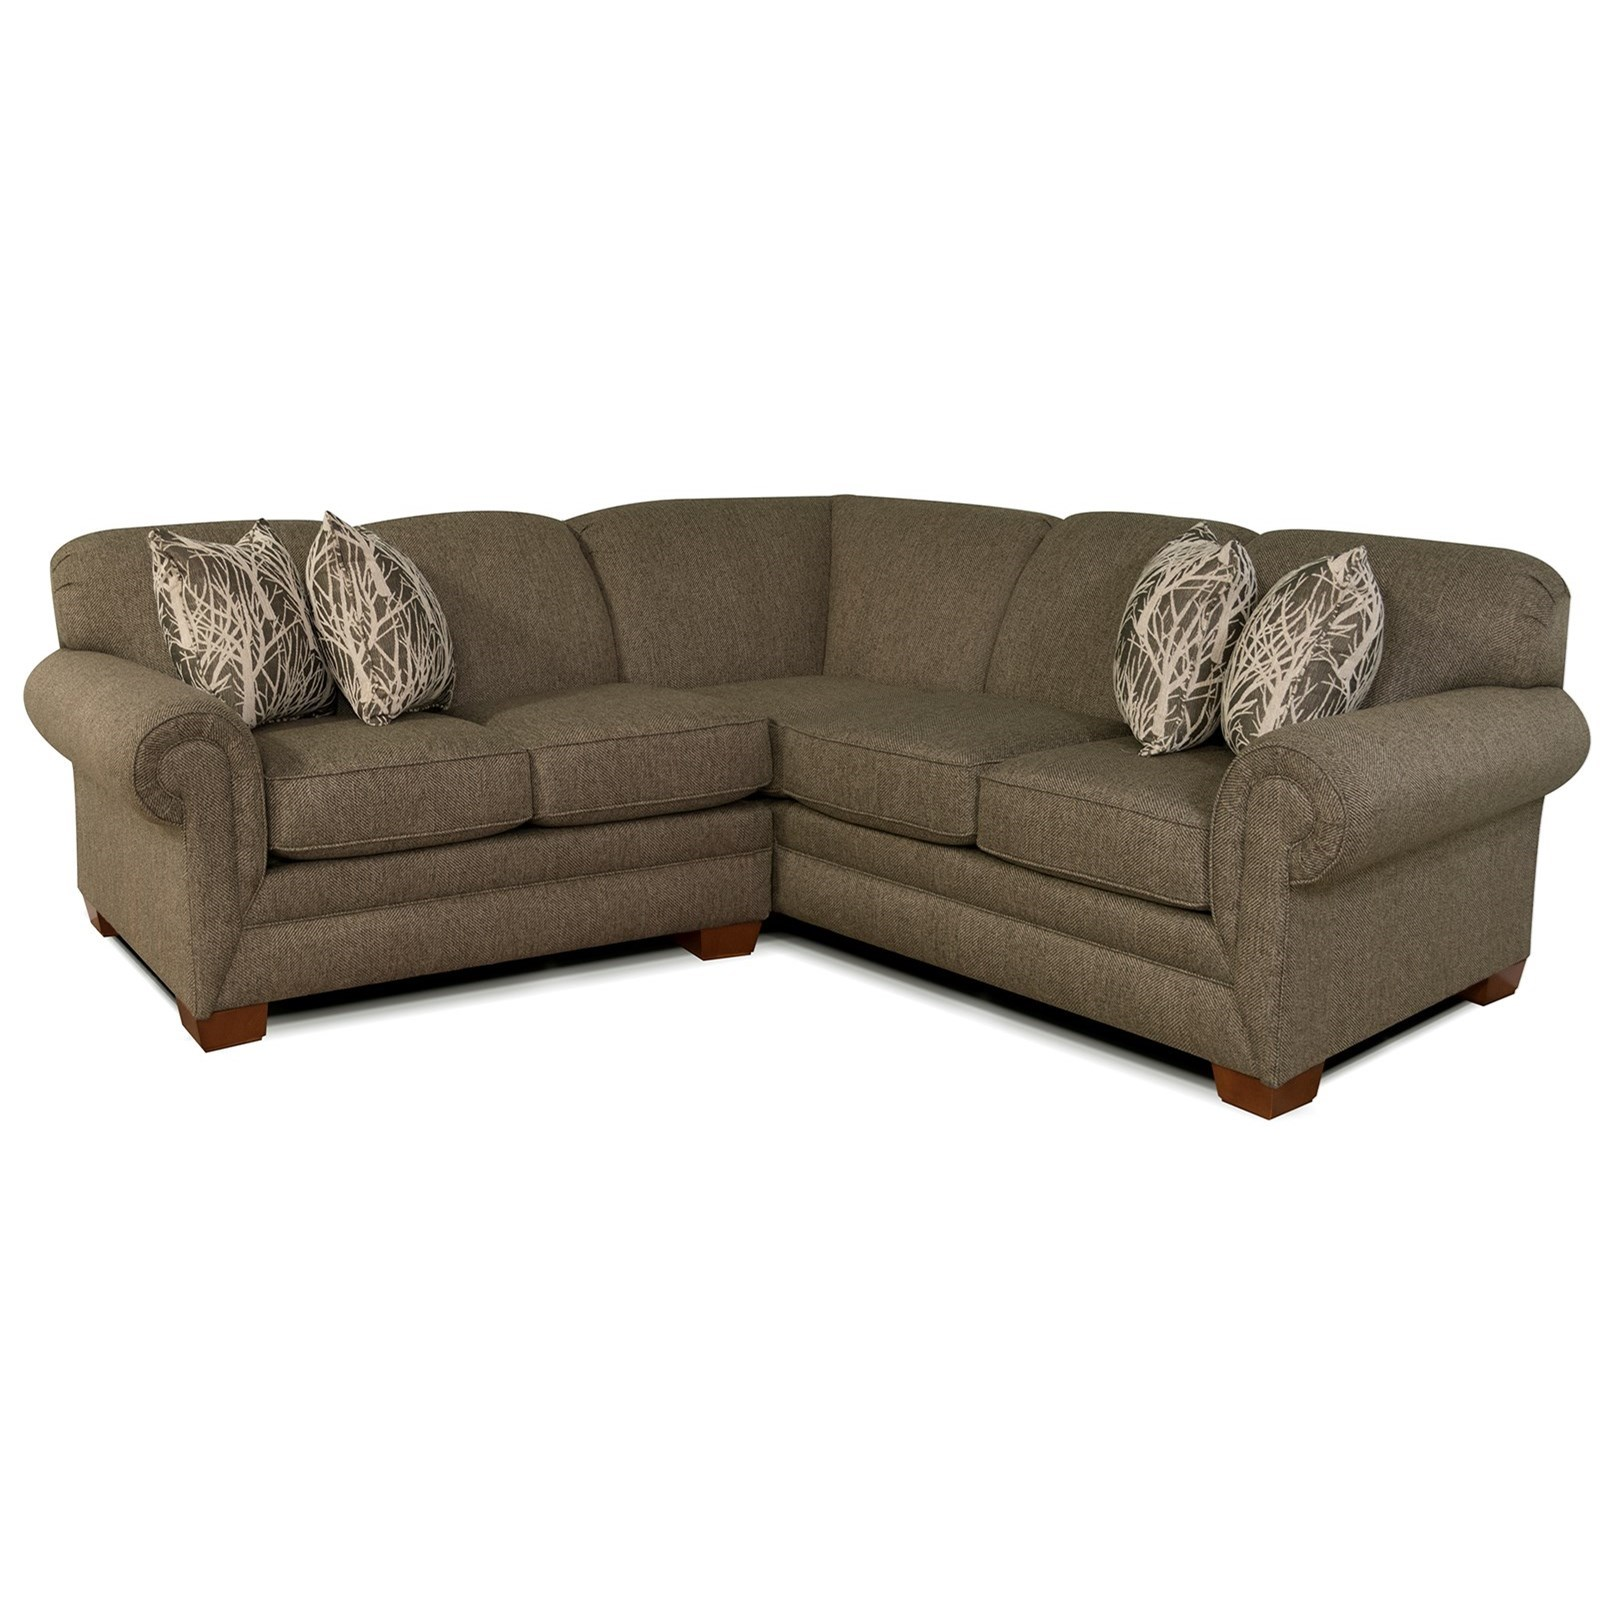 Small Sectional Sofa for 3-4 People